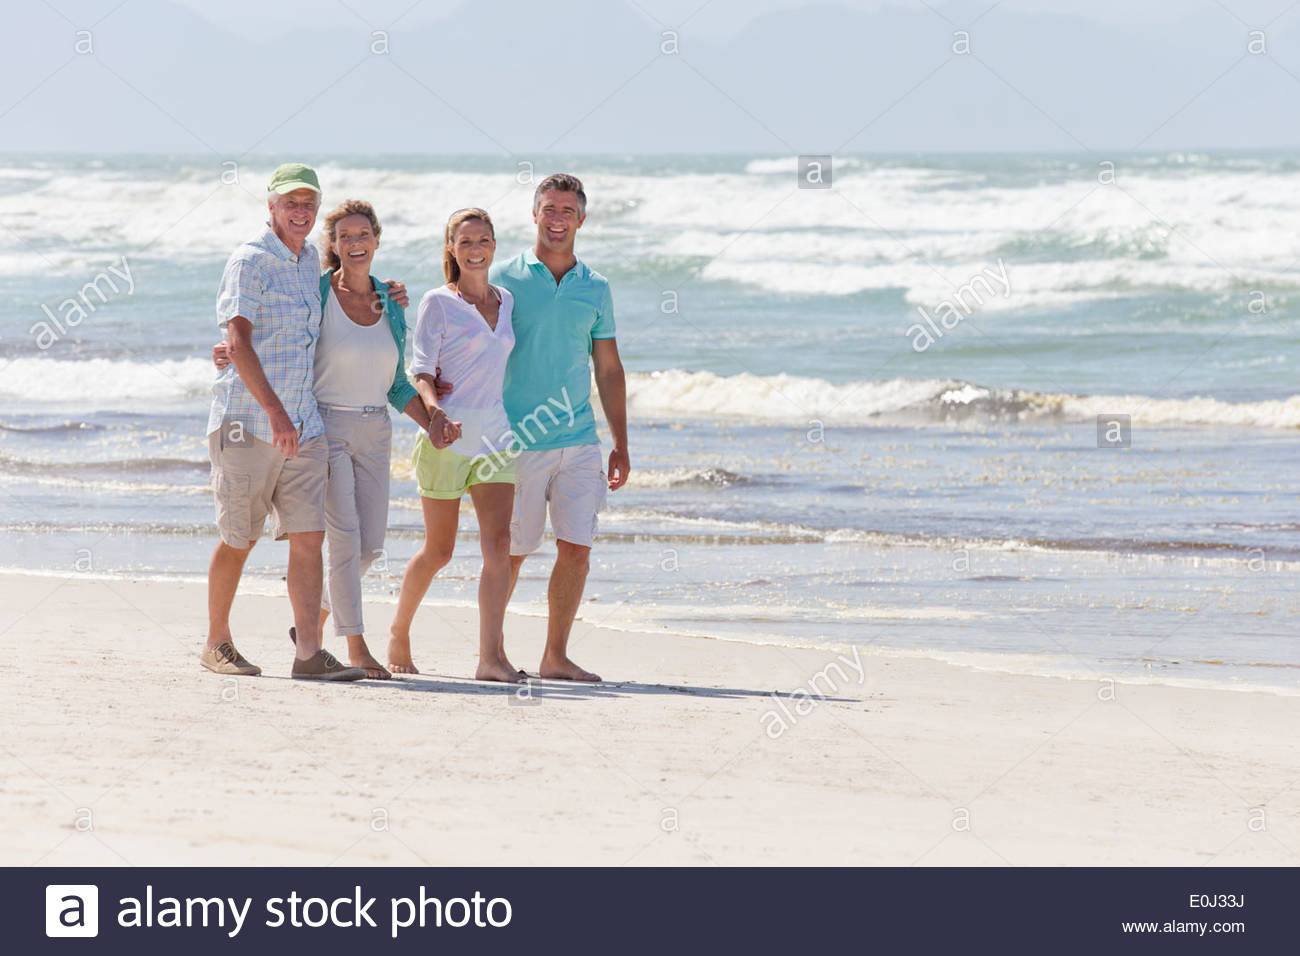 Portrait of happy couples walking on sunny beach - Stock Image